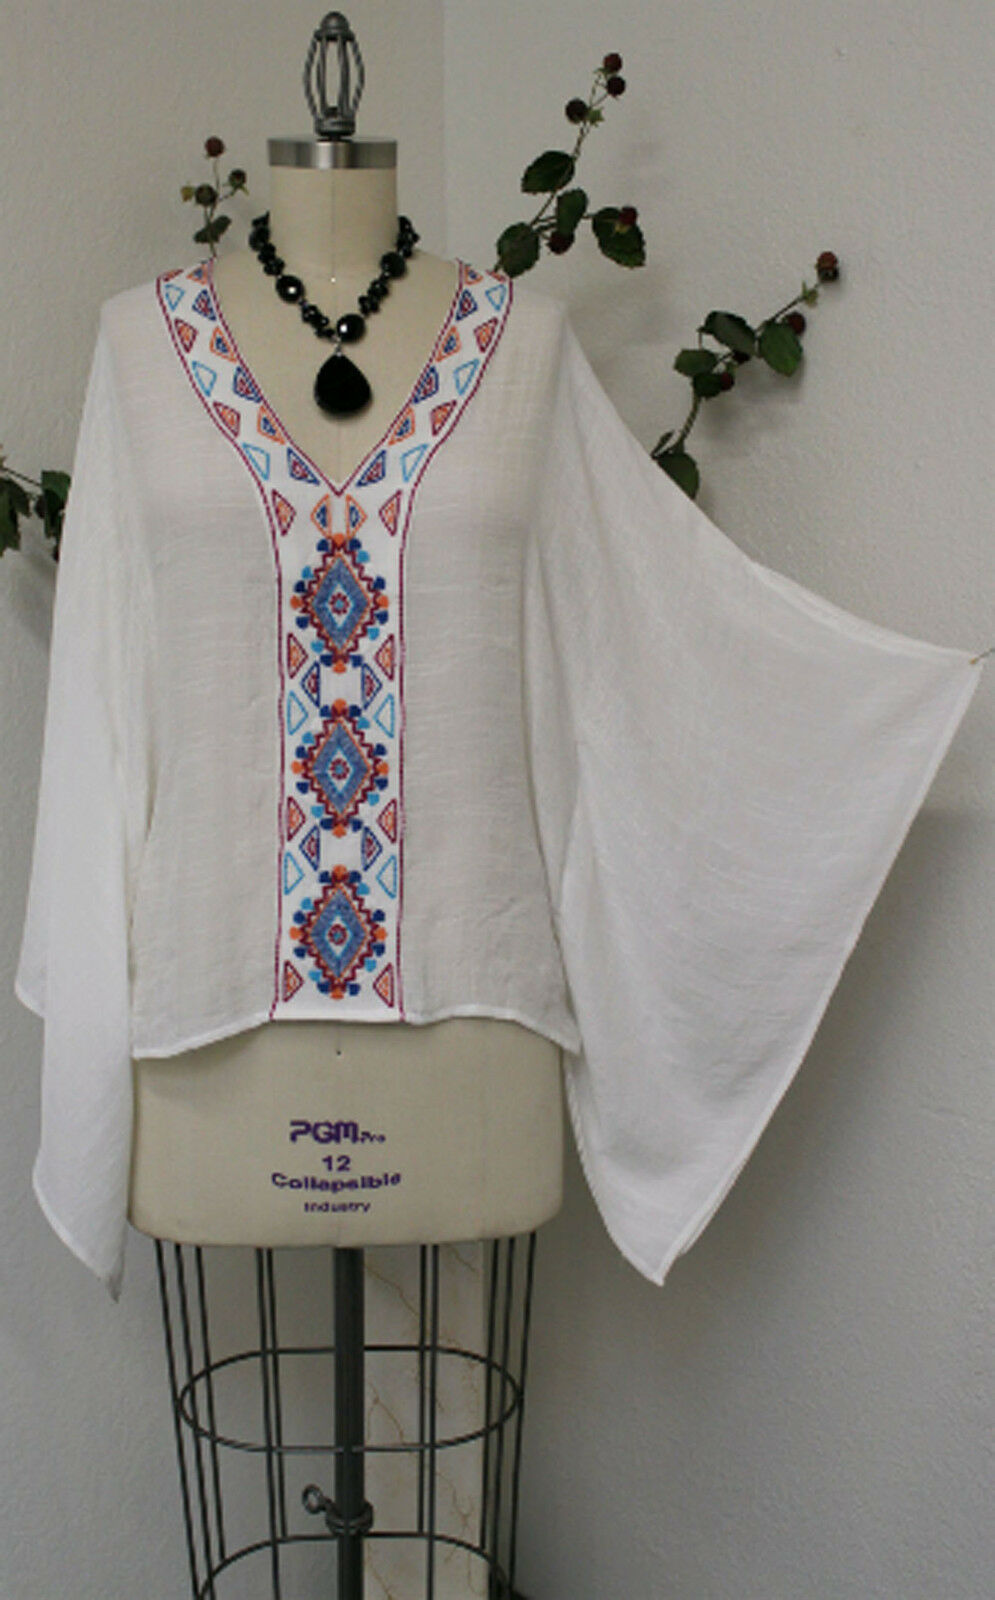 Must Have Summer Cool Designer Poncho Tunic Top Hip Hop, Bohemian,High Fashion